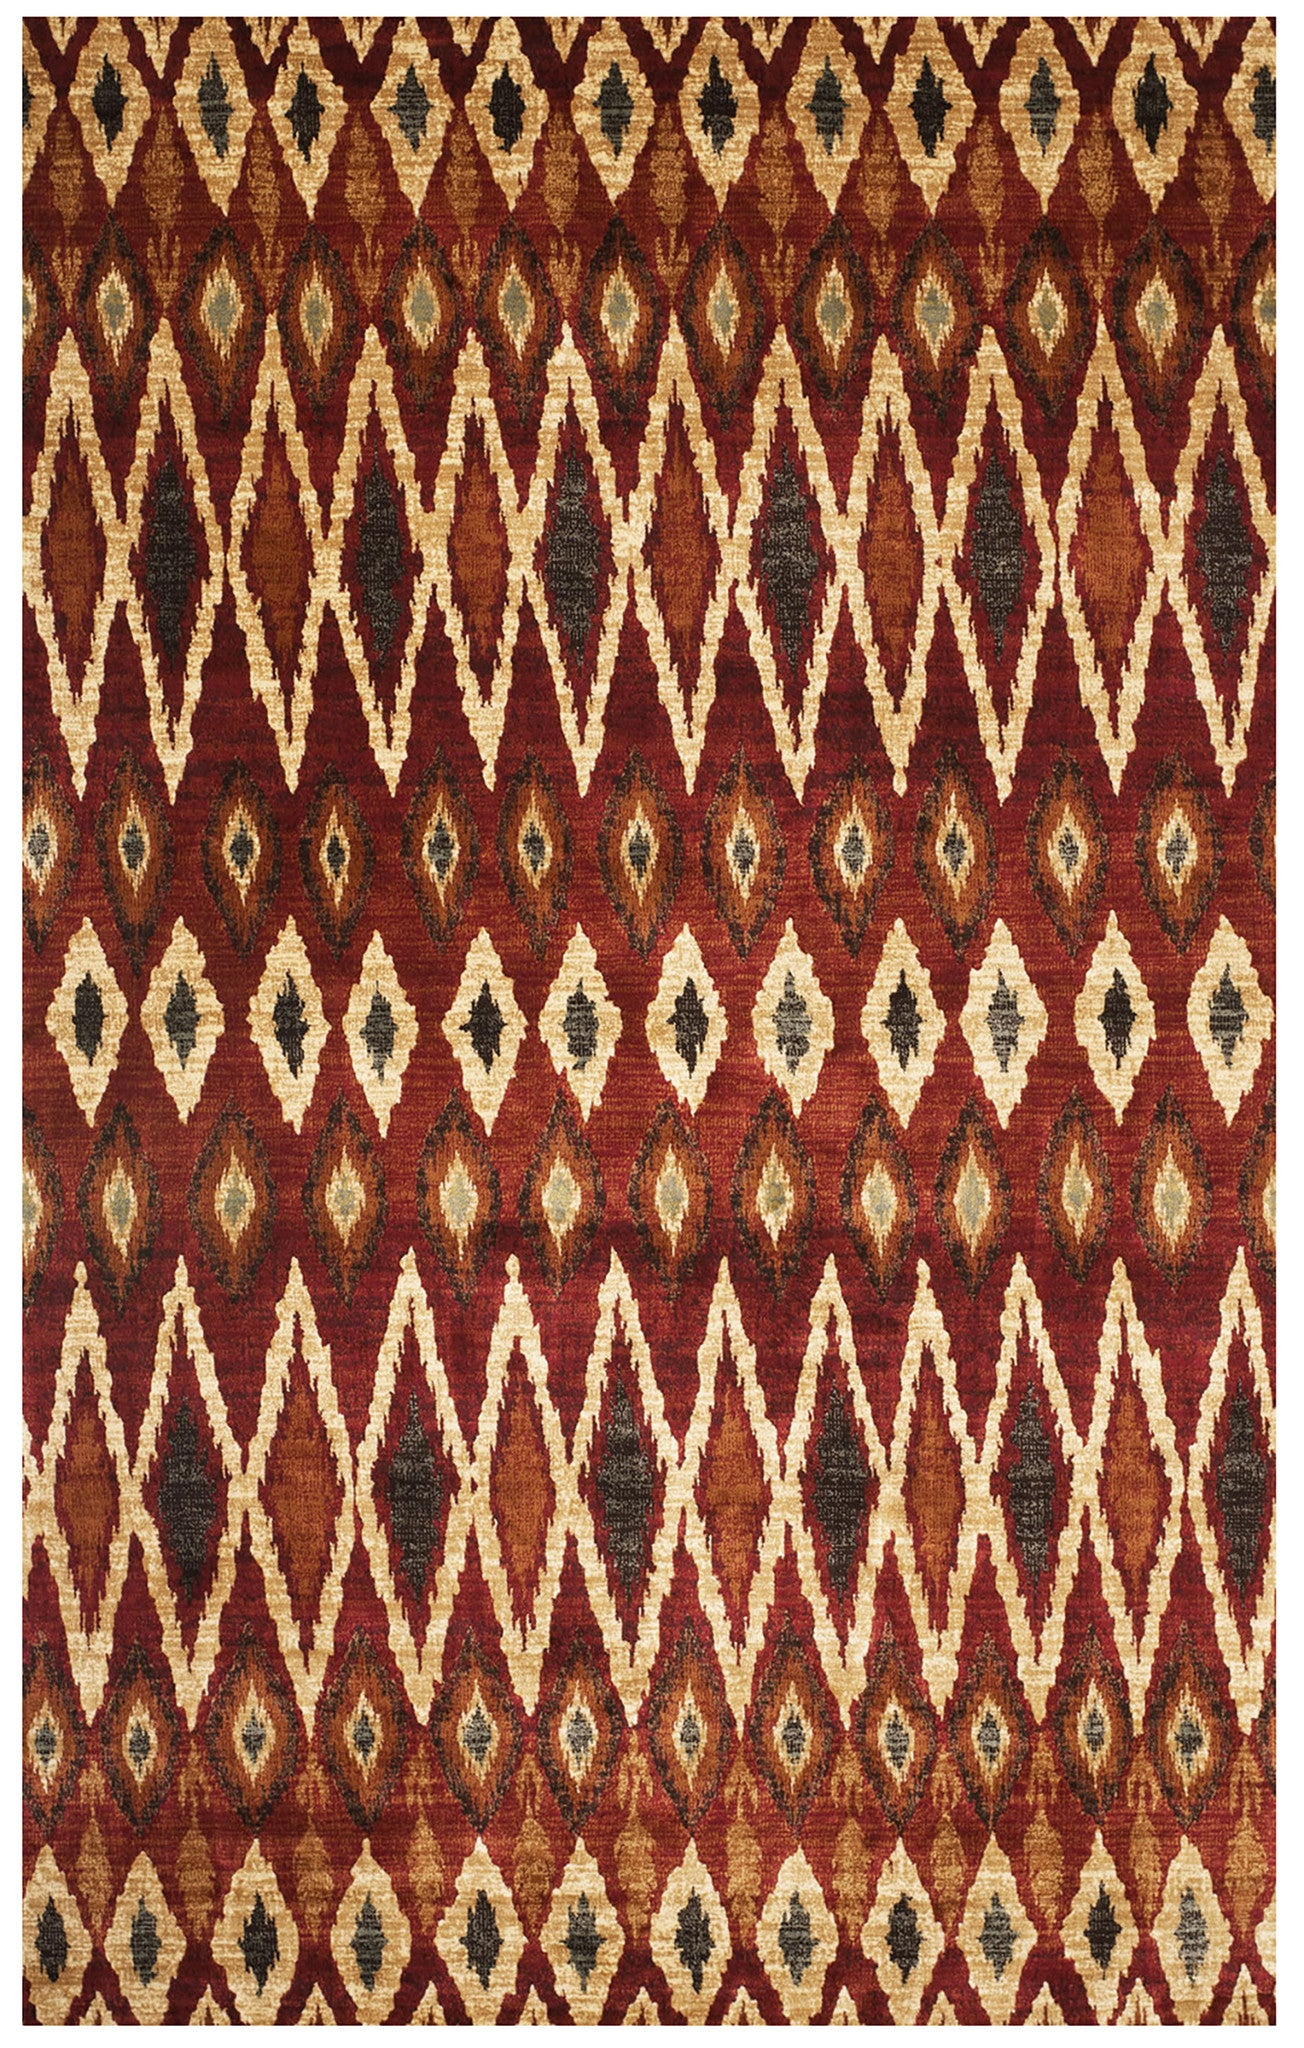 Design Retro Rug red and cream ikat diamond pattern rug woodwaves rug